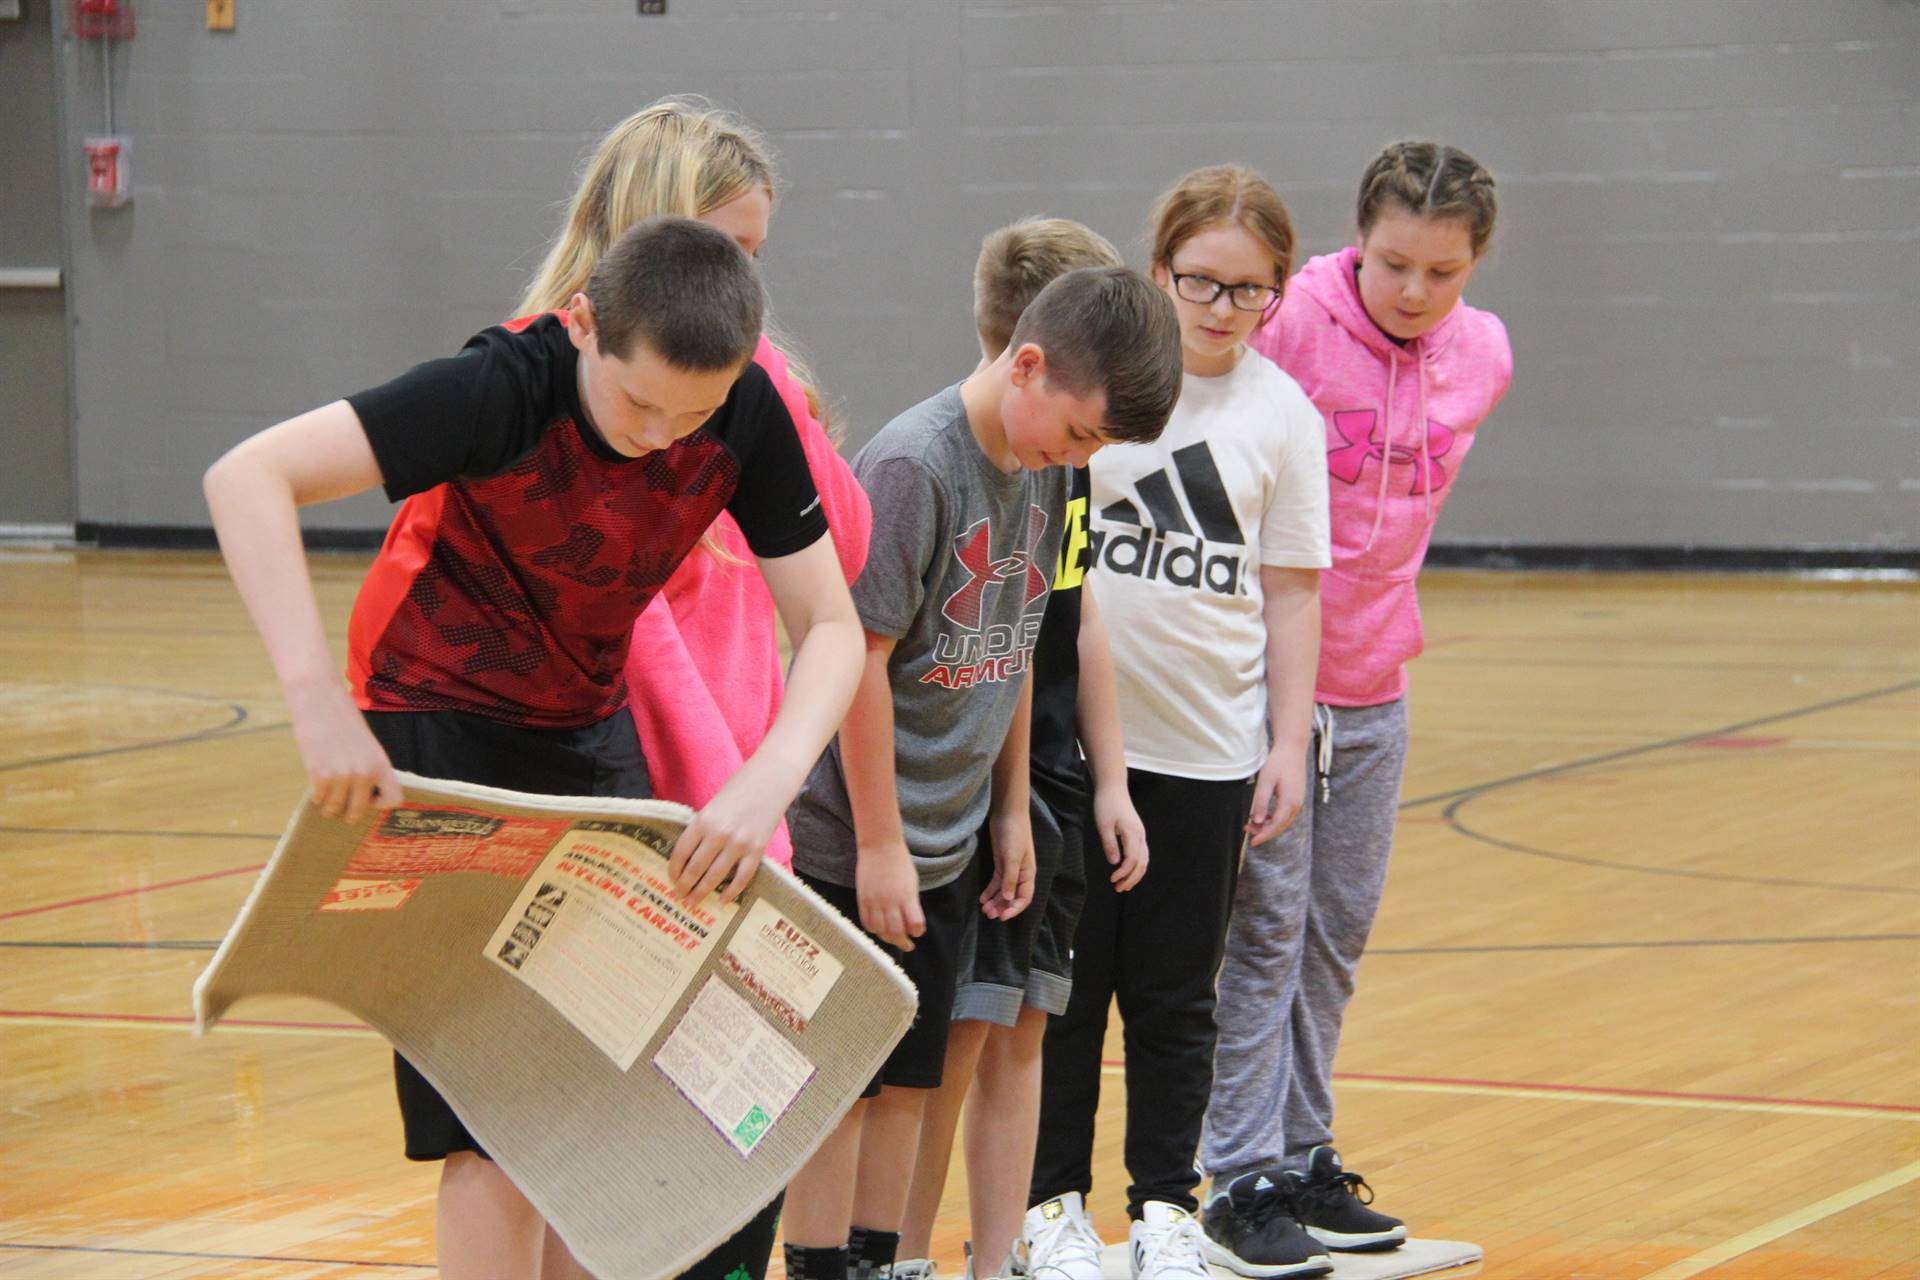 middle school students work together to beat lava game challenge